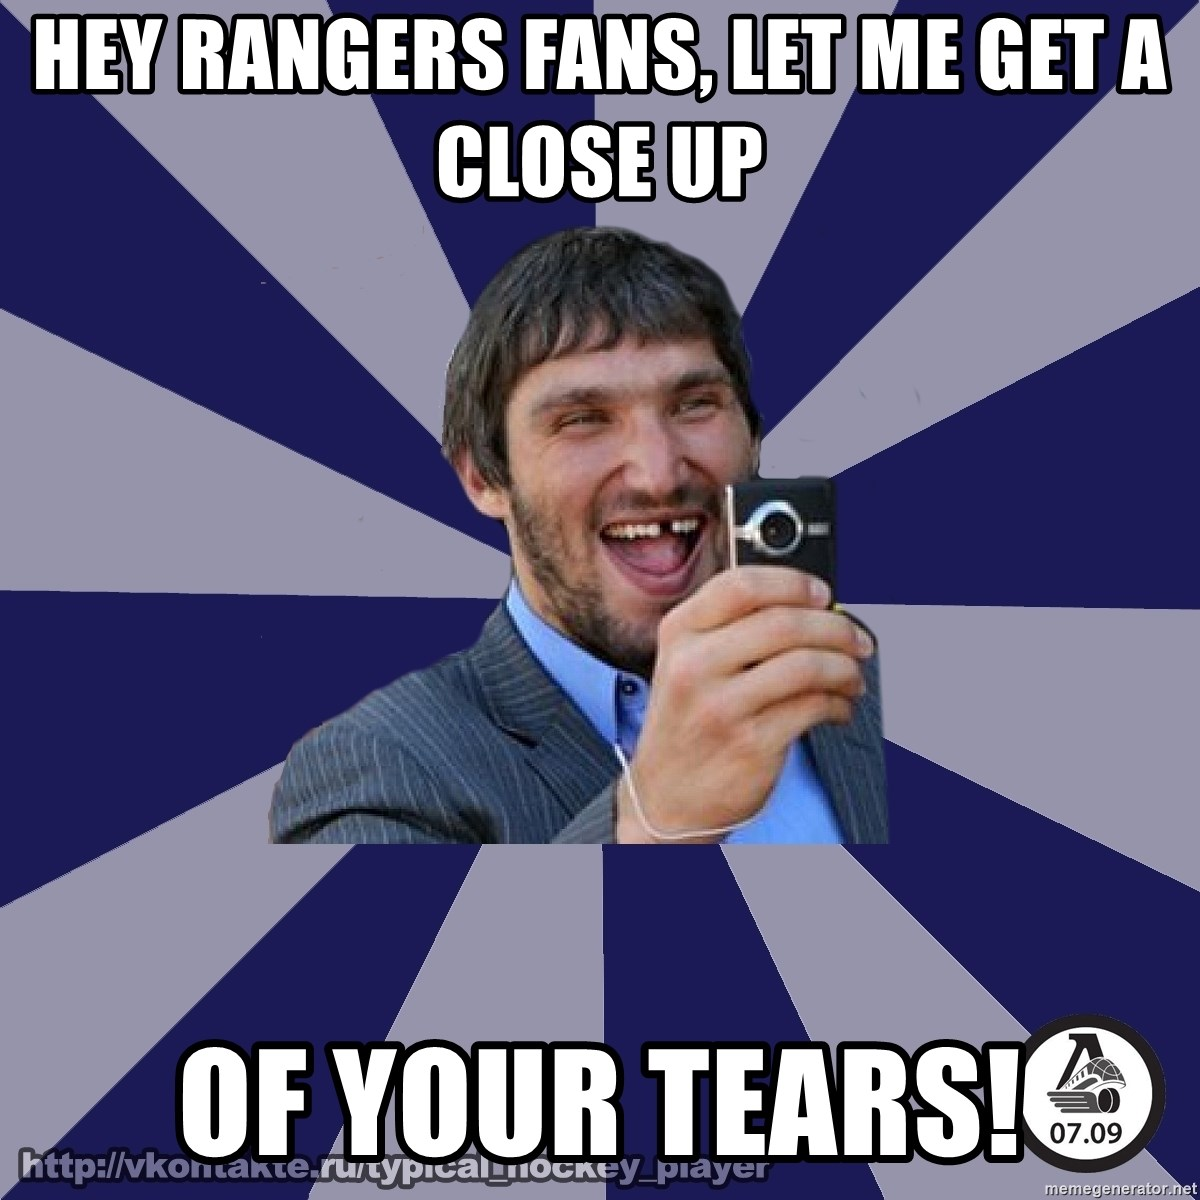 typical_hockey_player - Hey RAngers fans, let me get a close up of your tears!